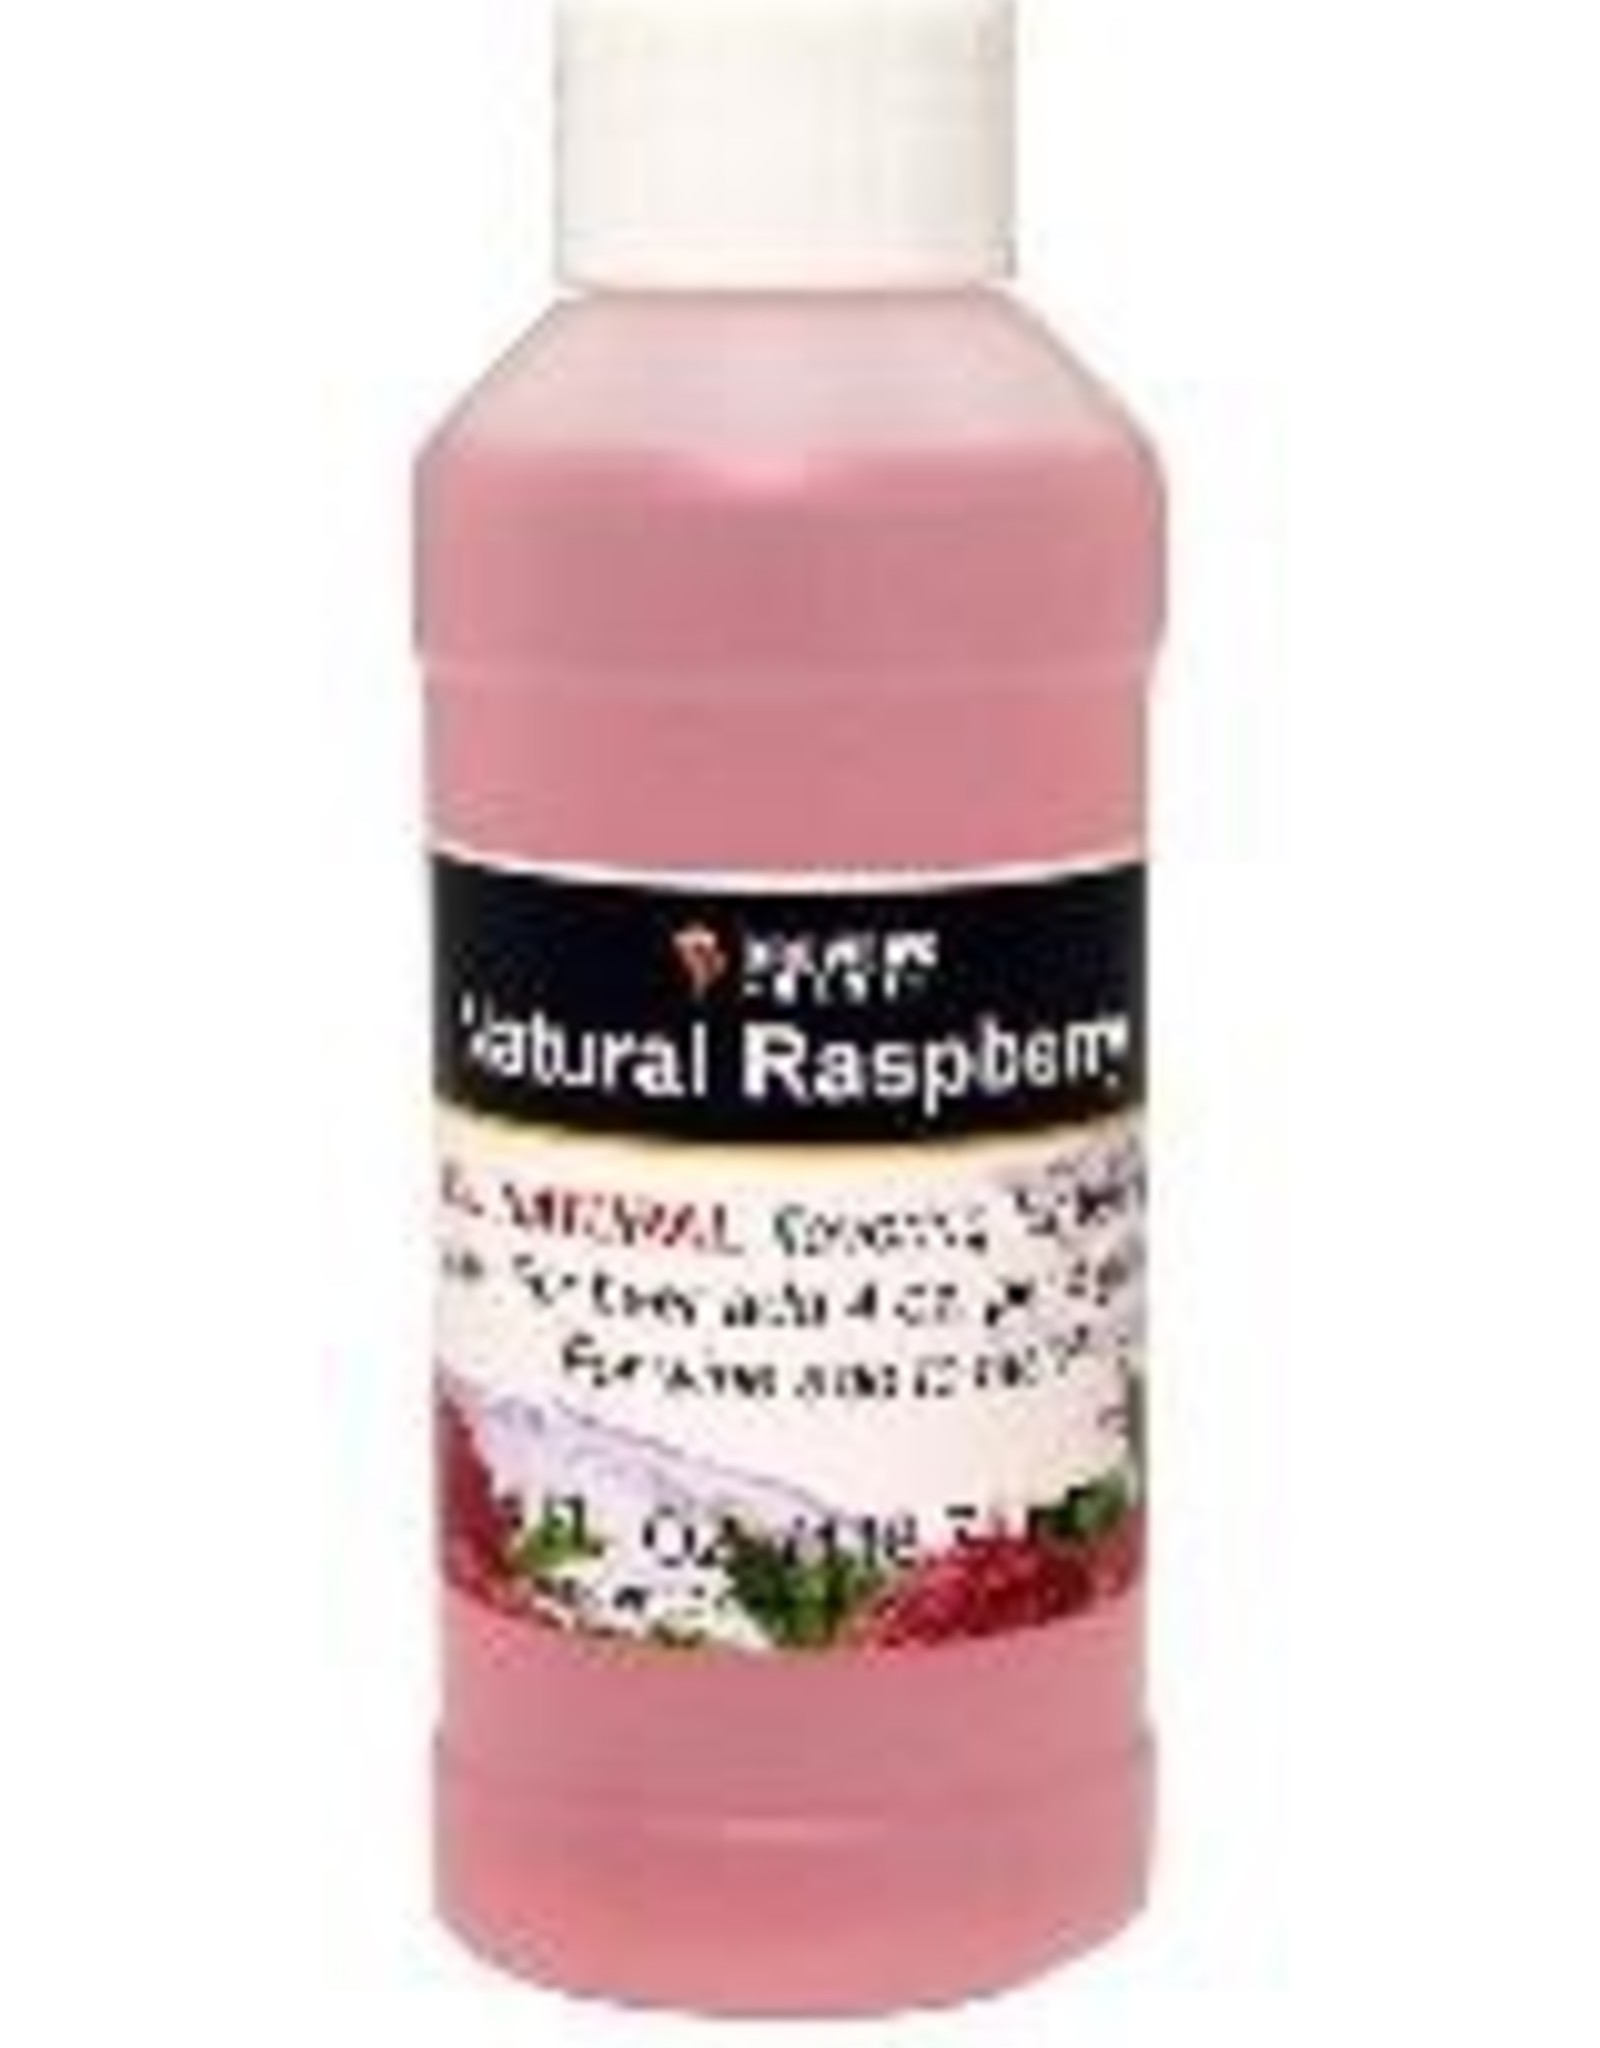 BREWERS BEST NATURAL RASPBERRY FLAVORING EXTRACT 4 OZ